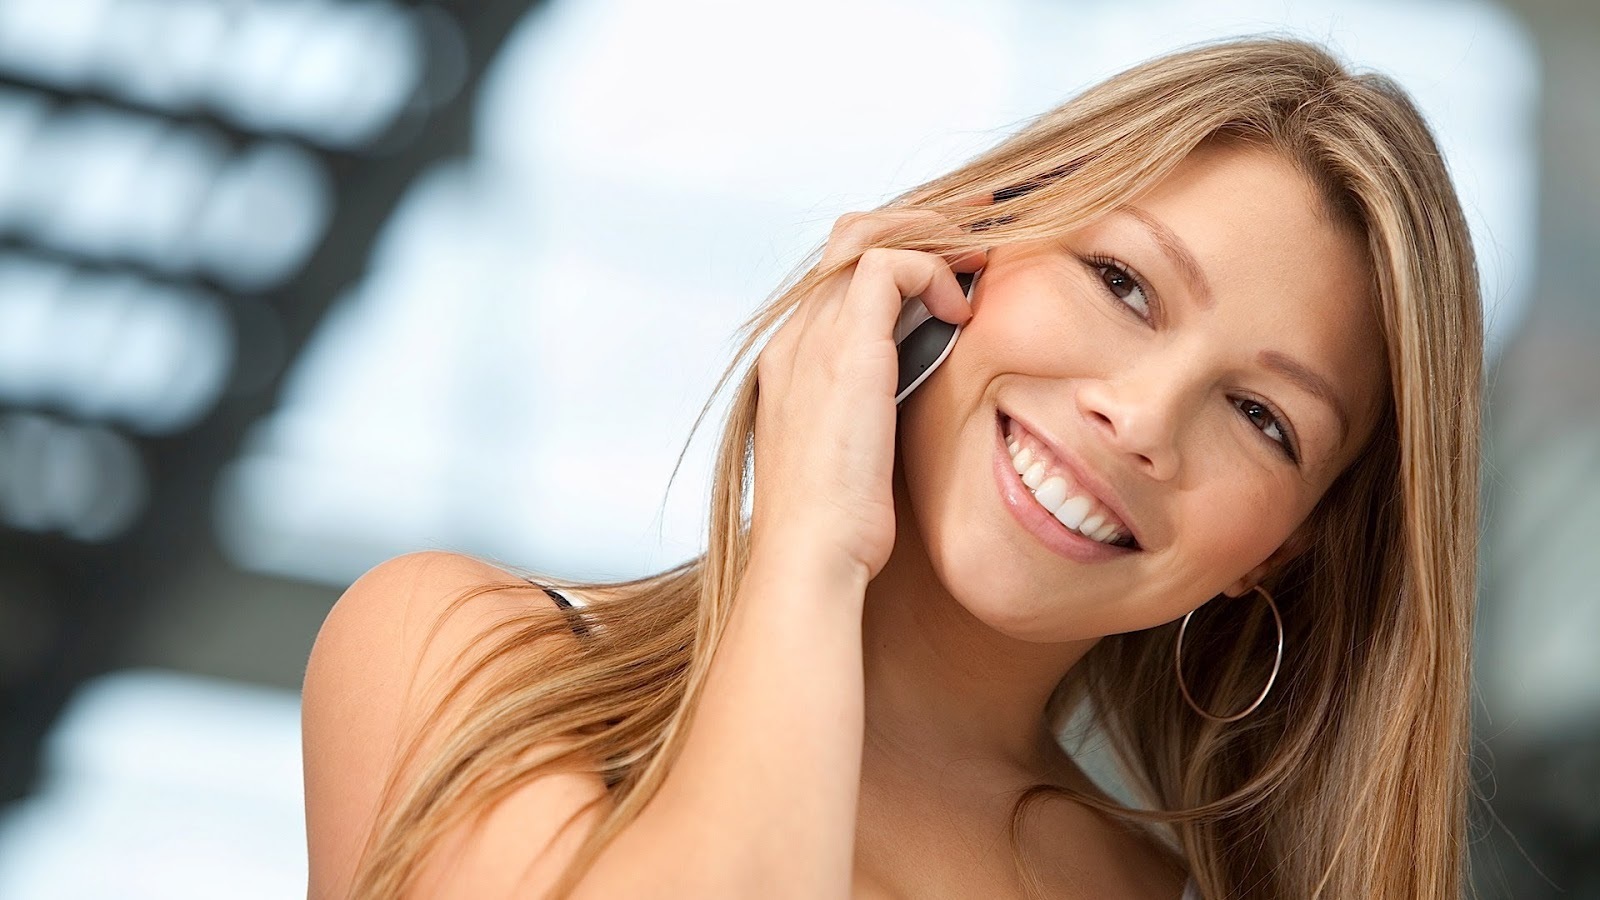 Can your Cell Phones cause Facial Acne?